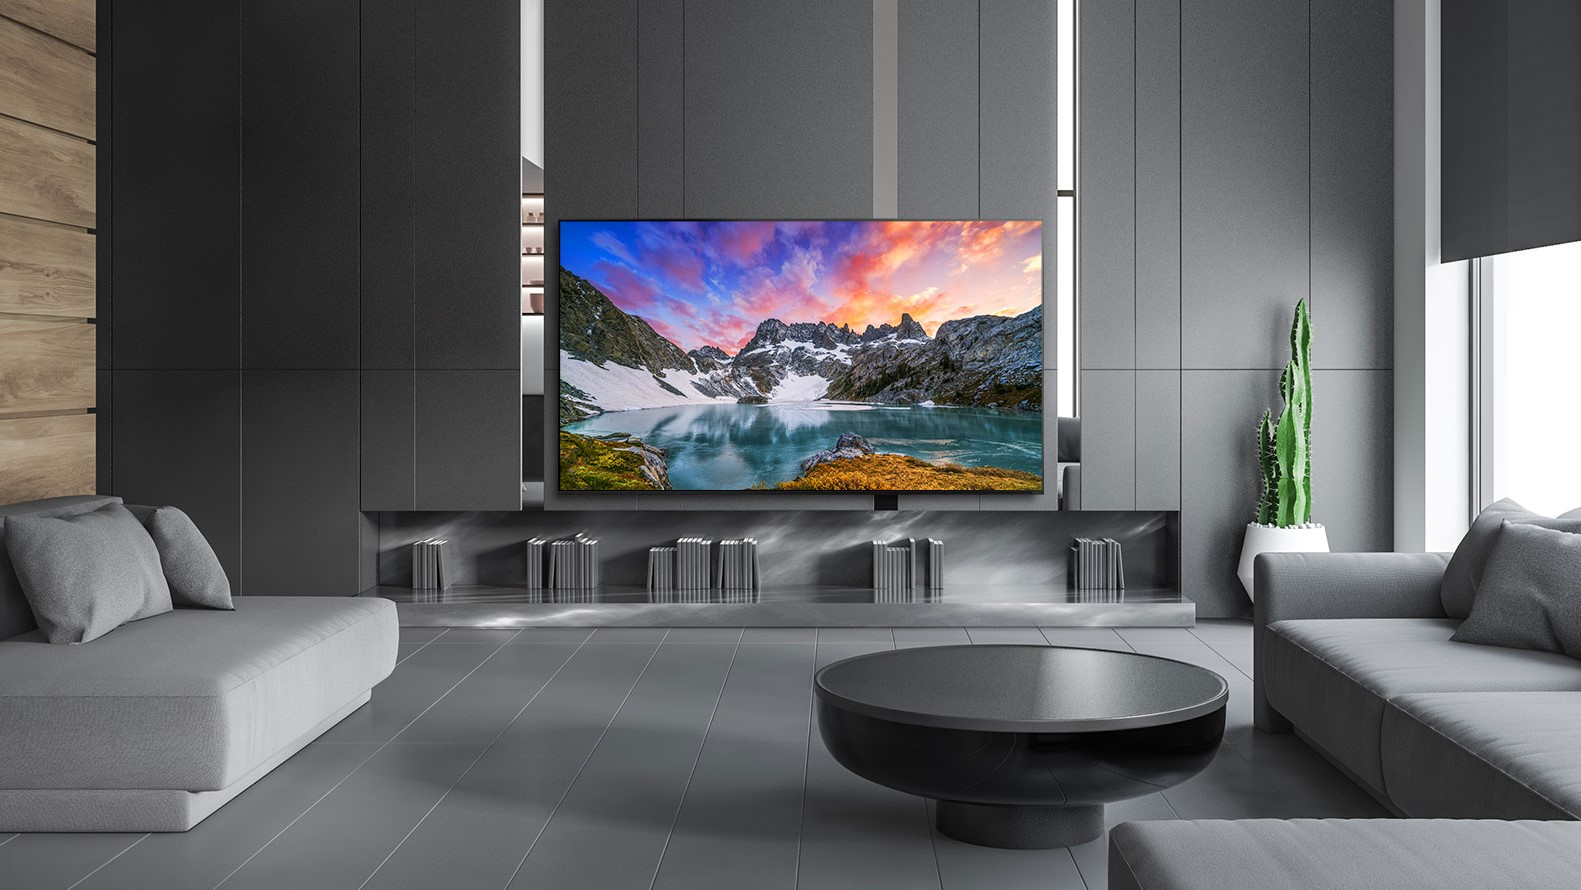 Best 75 Inch 4k Tvs From Samsung Hisense And More Techradar